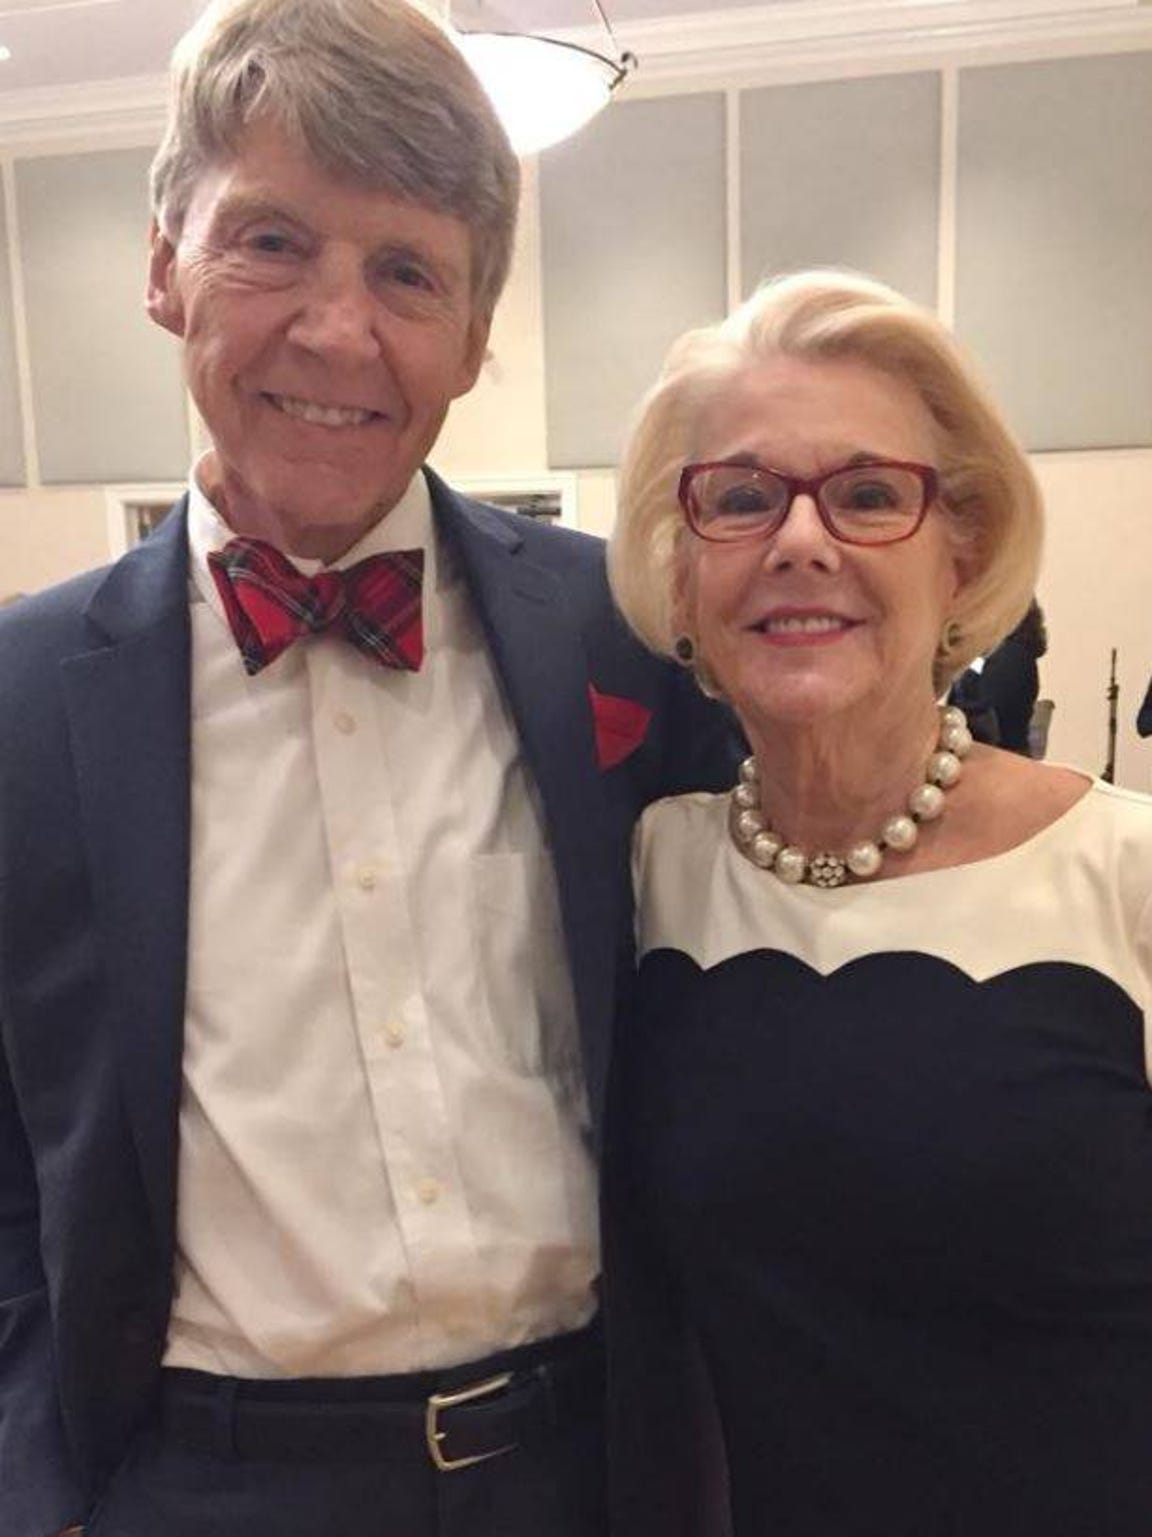 Gerald Ensley and wife Sally Karioth